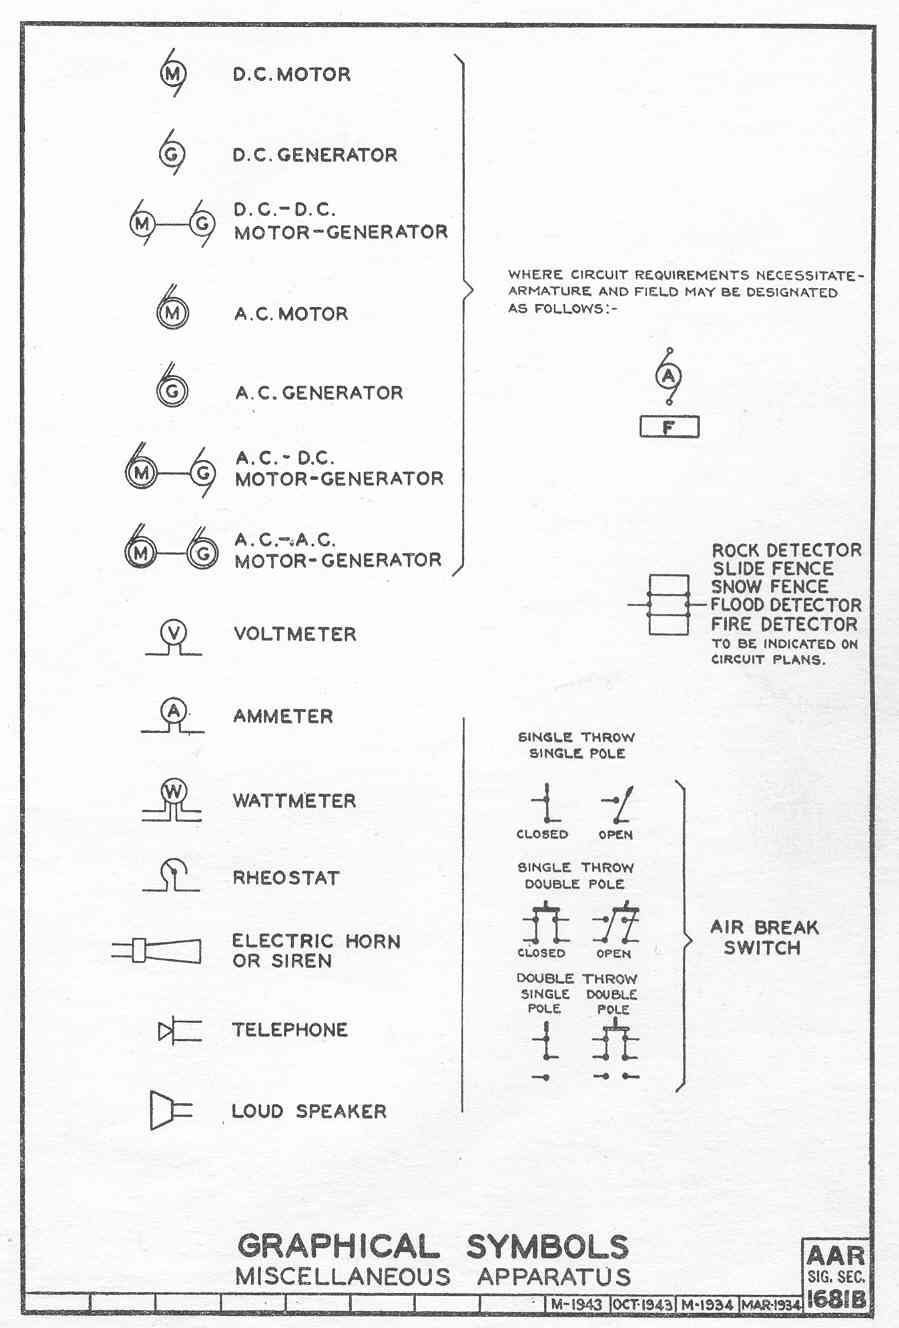 Circuit Nomenclature Symbols Wiring Diagram Key Other Electrical Schematic